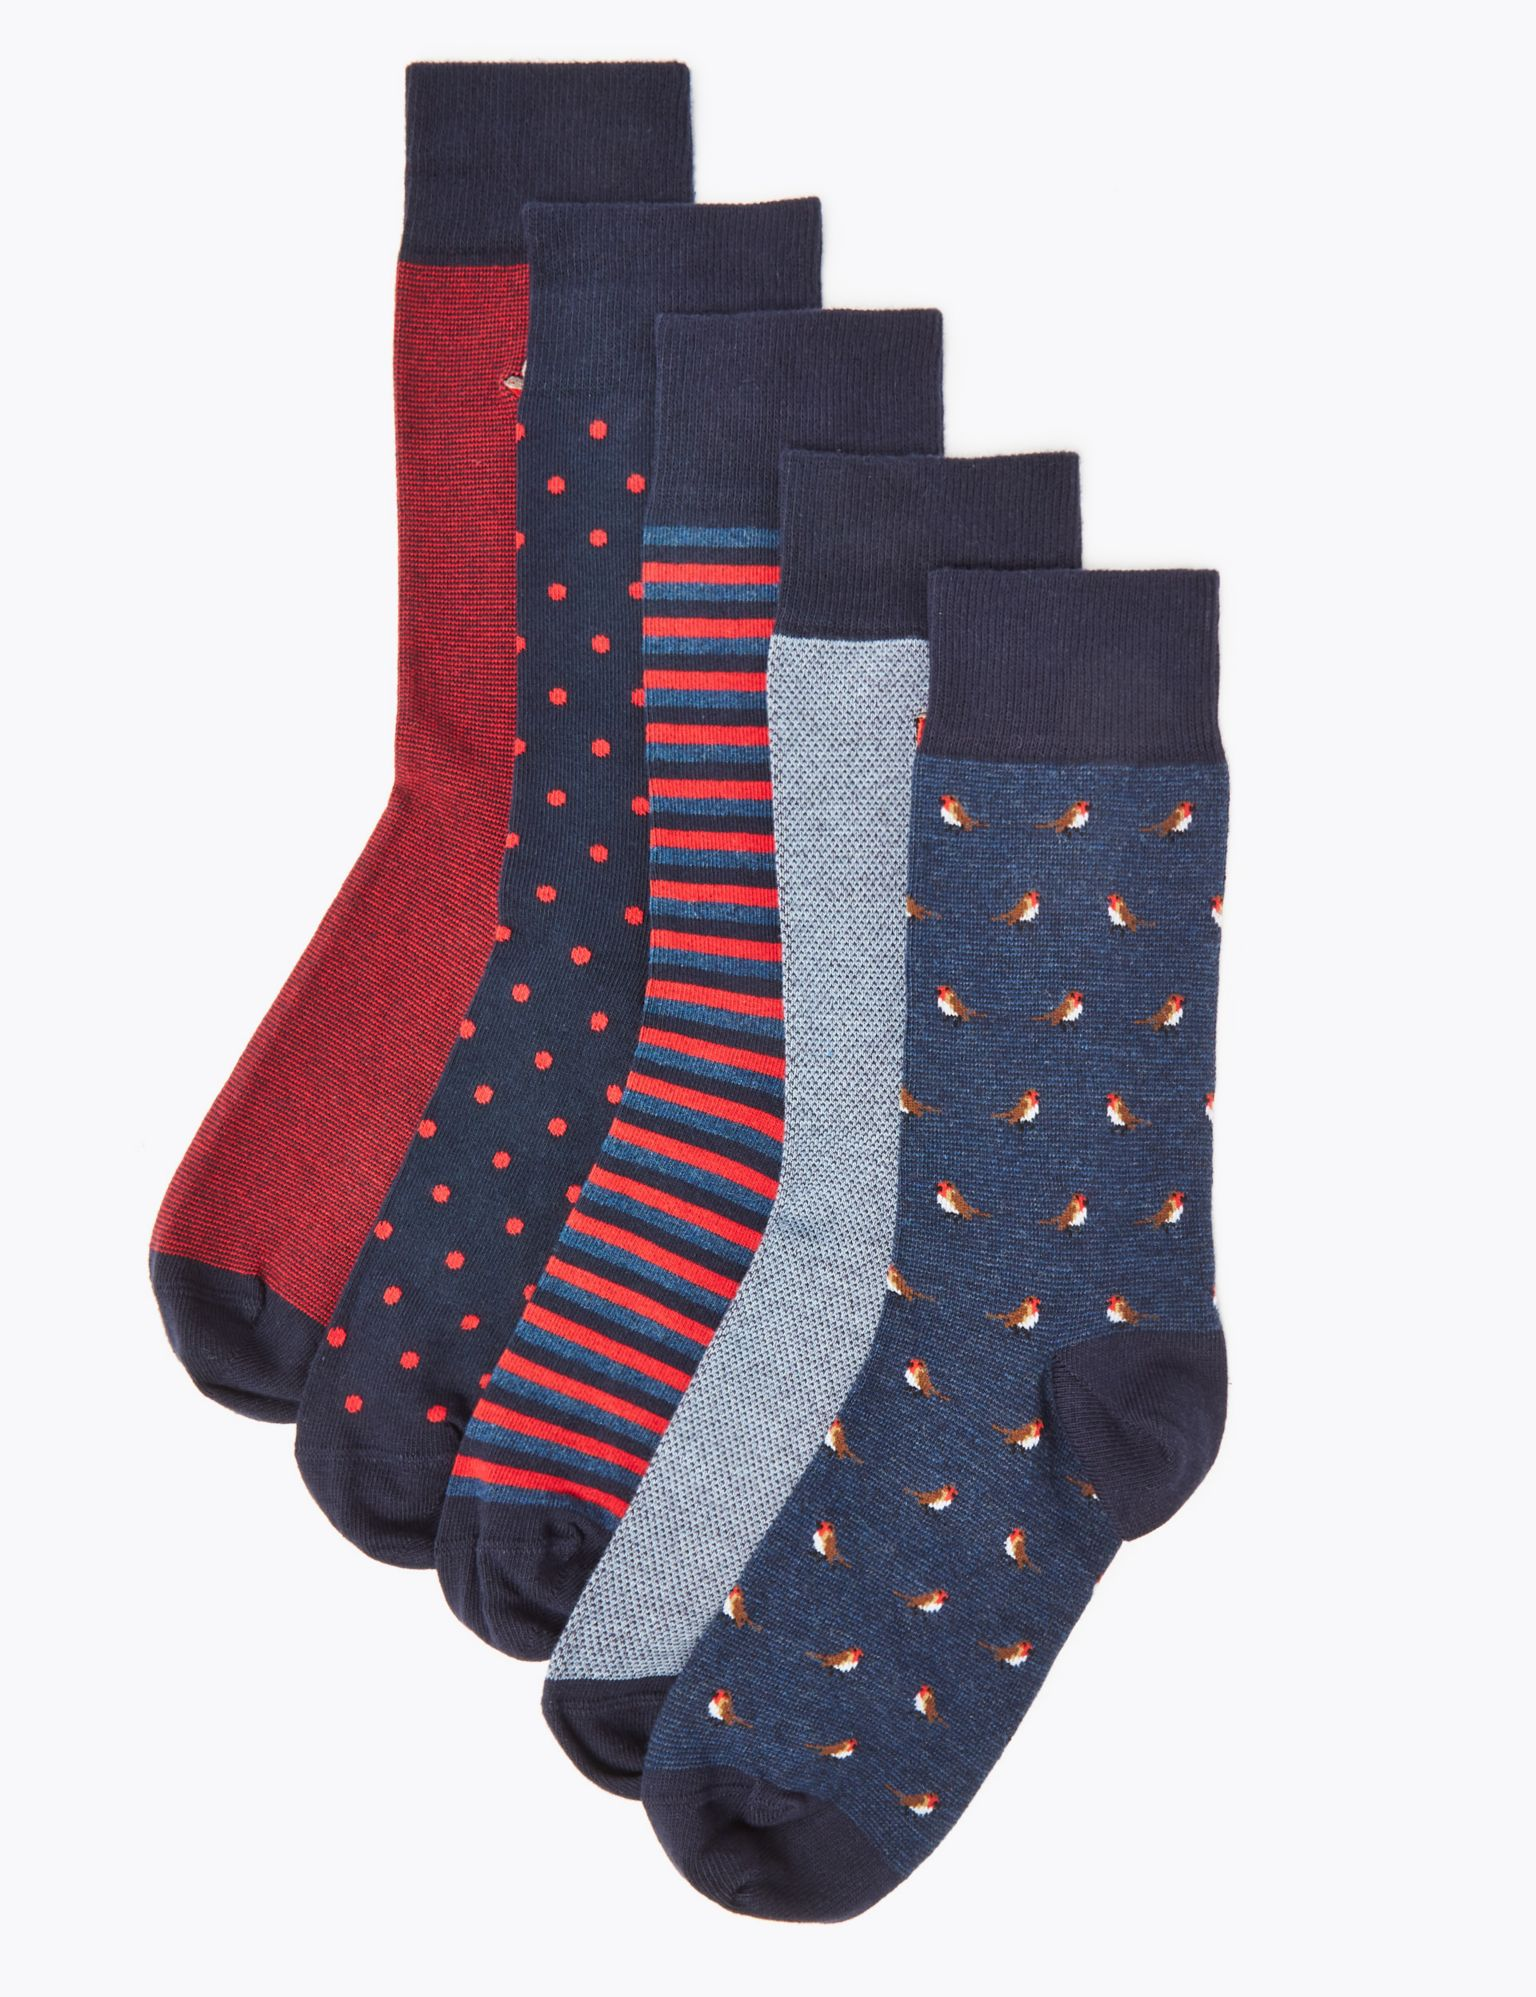 5 Pairs of Marks and Spencer Socks